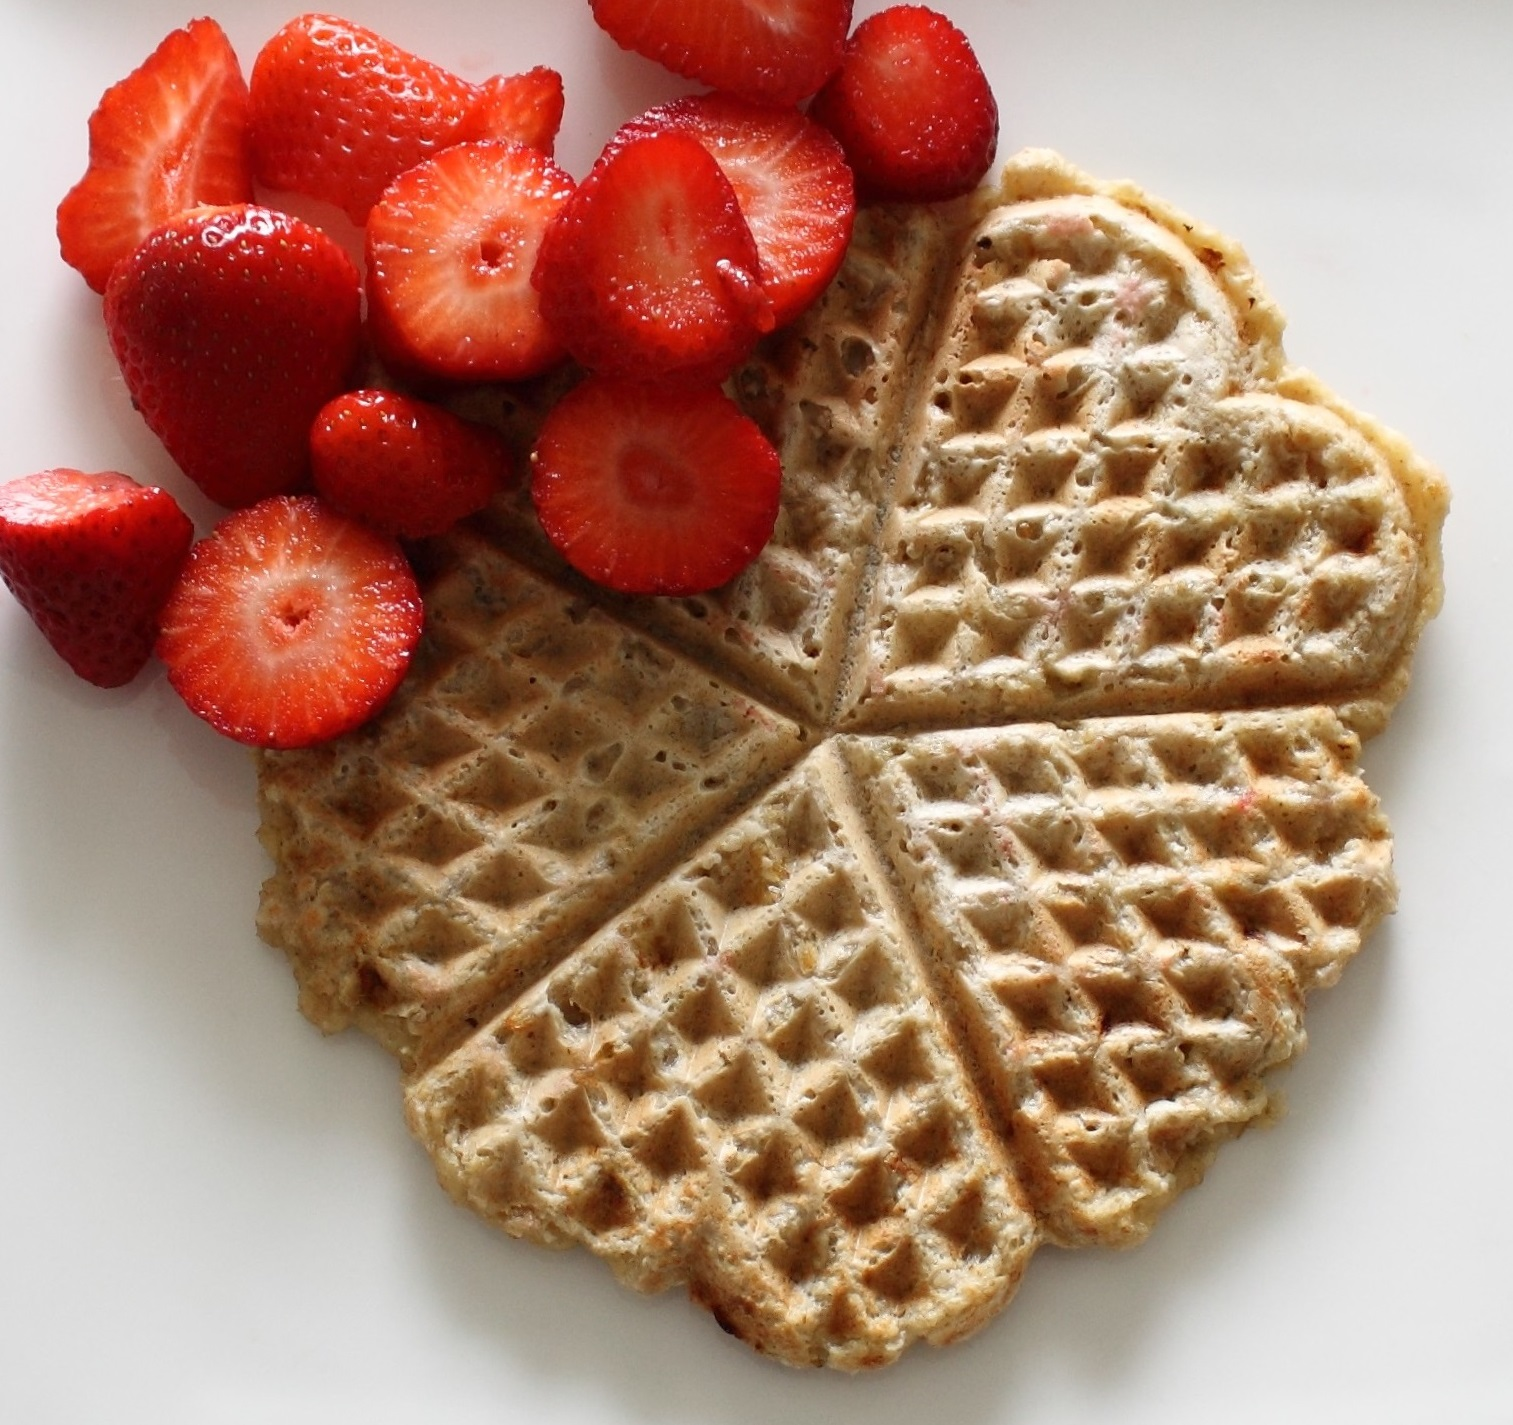 Vegan waffles recipe two ingredients banana oats